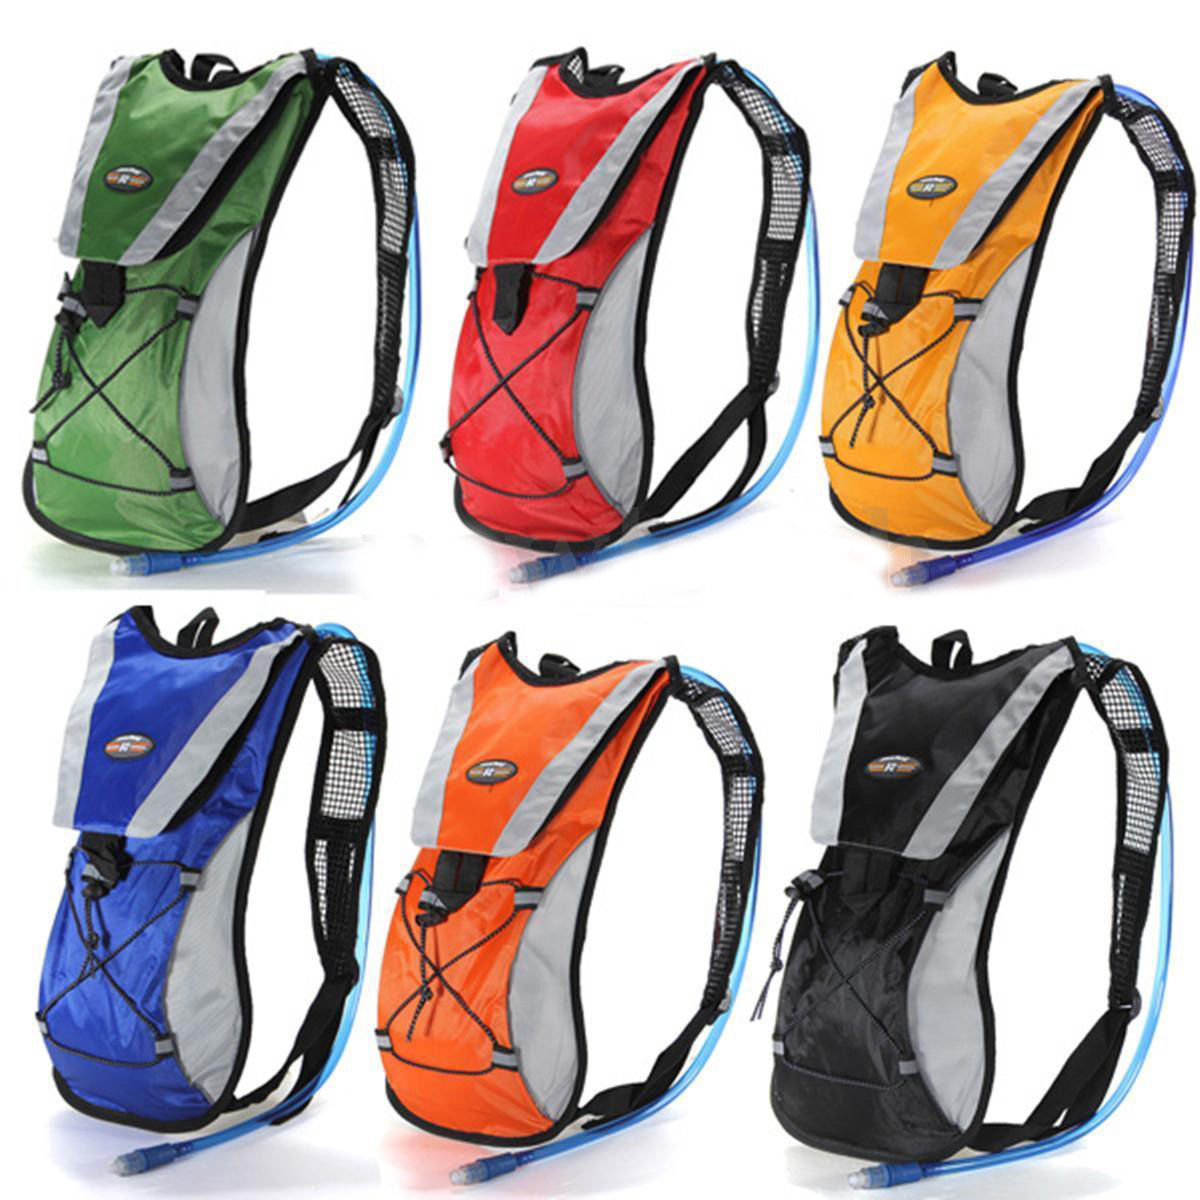 Hydration Pack   Water Backpack with 2L Water Bladder Perfect For Running Cycling Hiking Climbing Pouch-Black color by